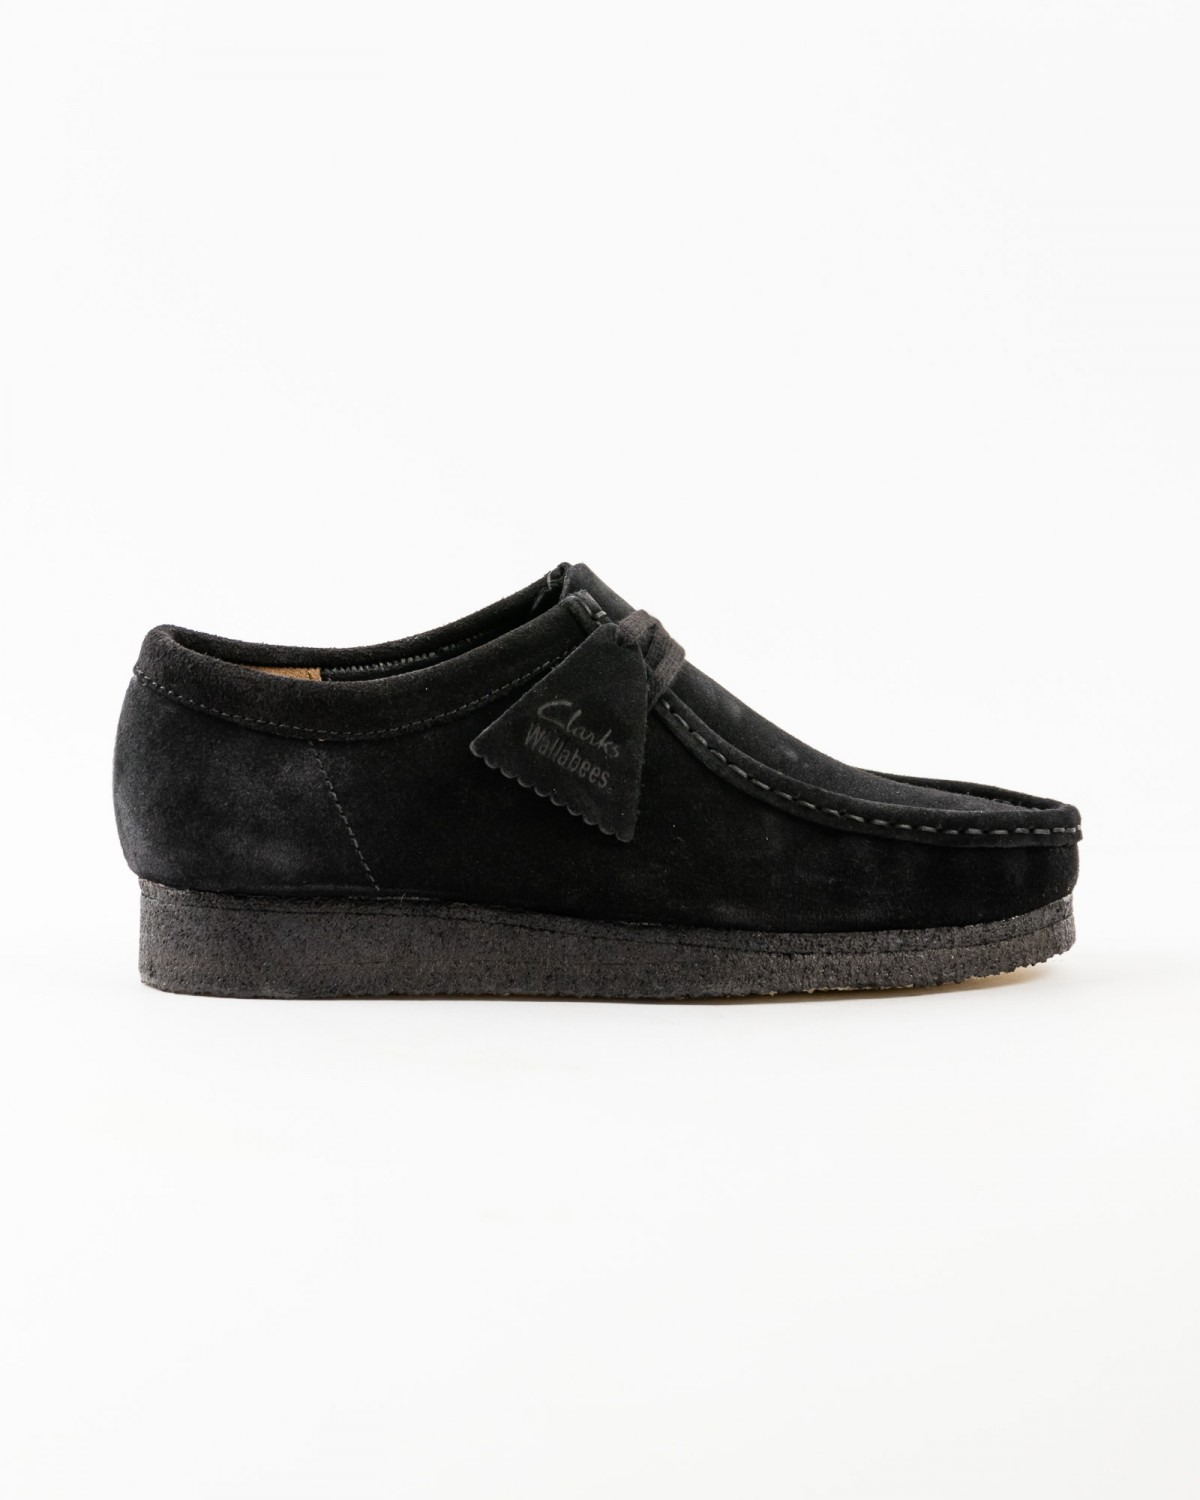 1baa19be992520 Chaussures clarks homme h17